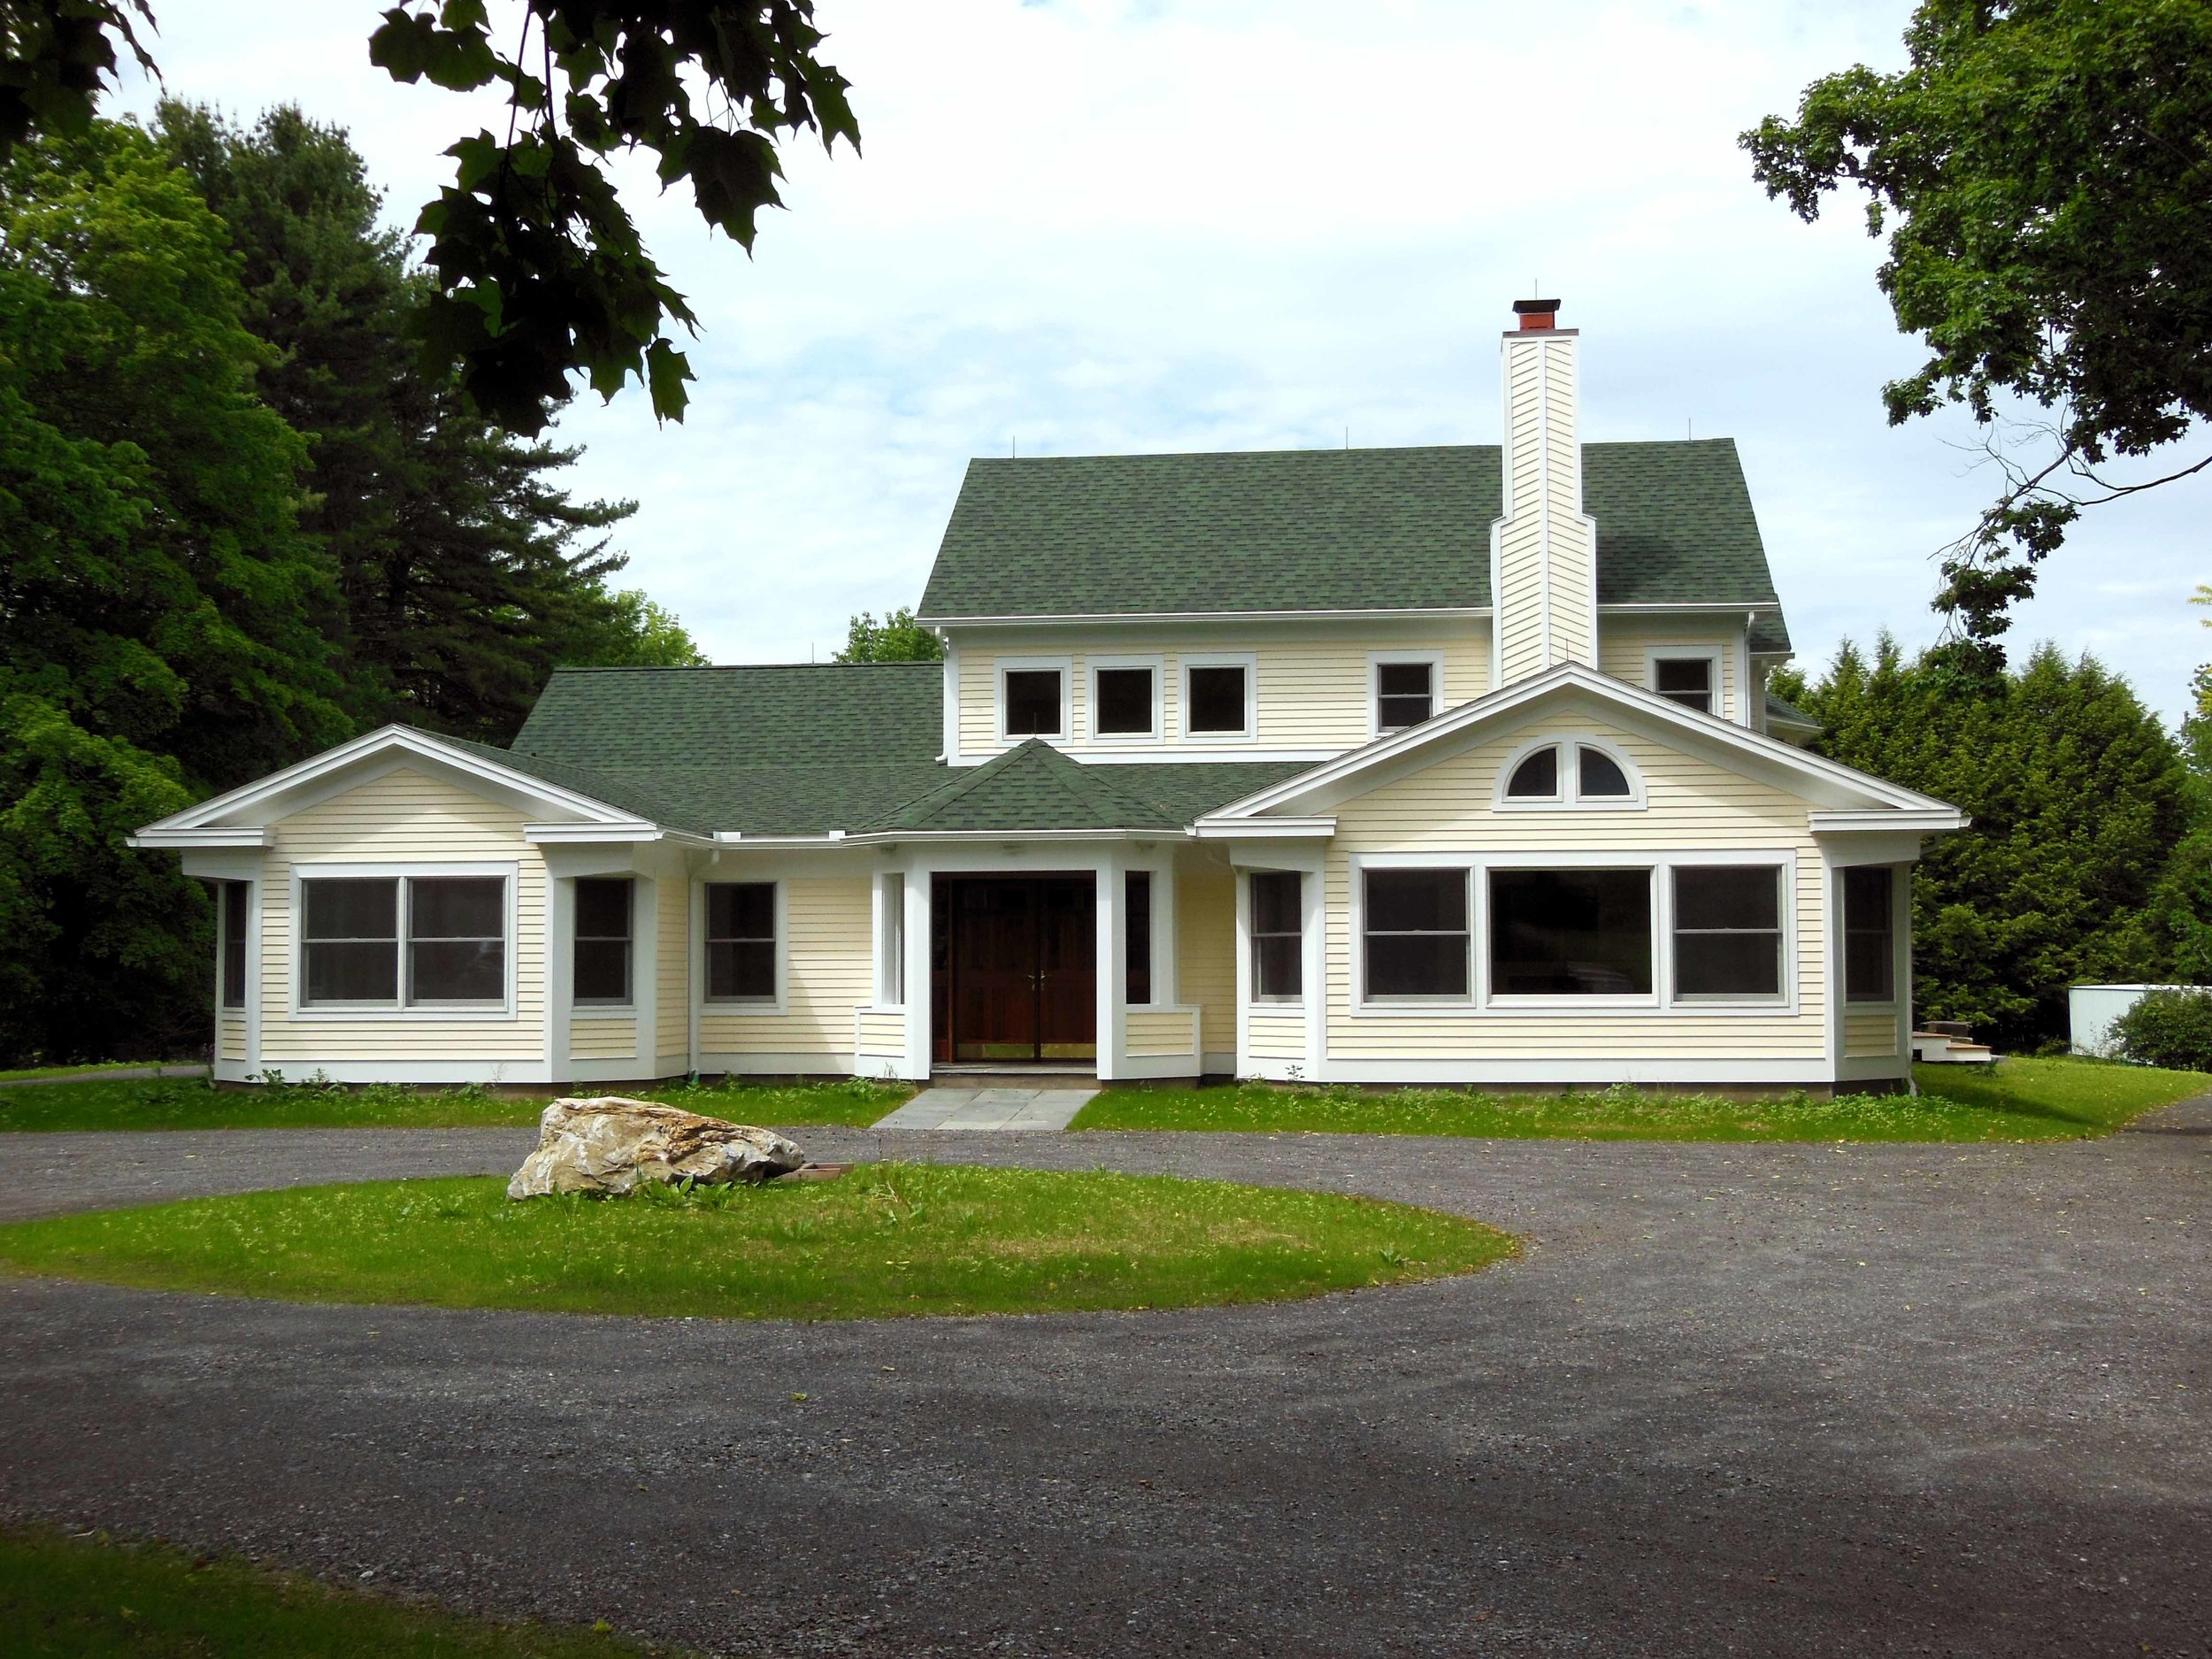 """FARMHOUSE ADDITION, STOCKBRIDGE,MA   Designed to replicate an Adirondack style cottage, this three bedroom house has an open plan Living-Dining-Kitchen area on the first floor. A second open """"Living Area"""" is ensconced by the children's bedrooms."""